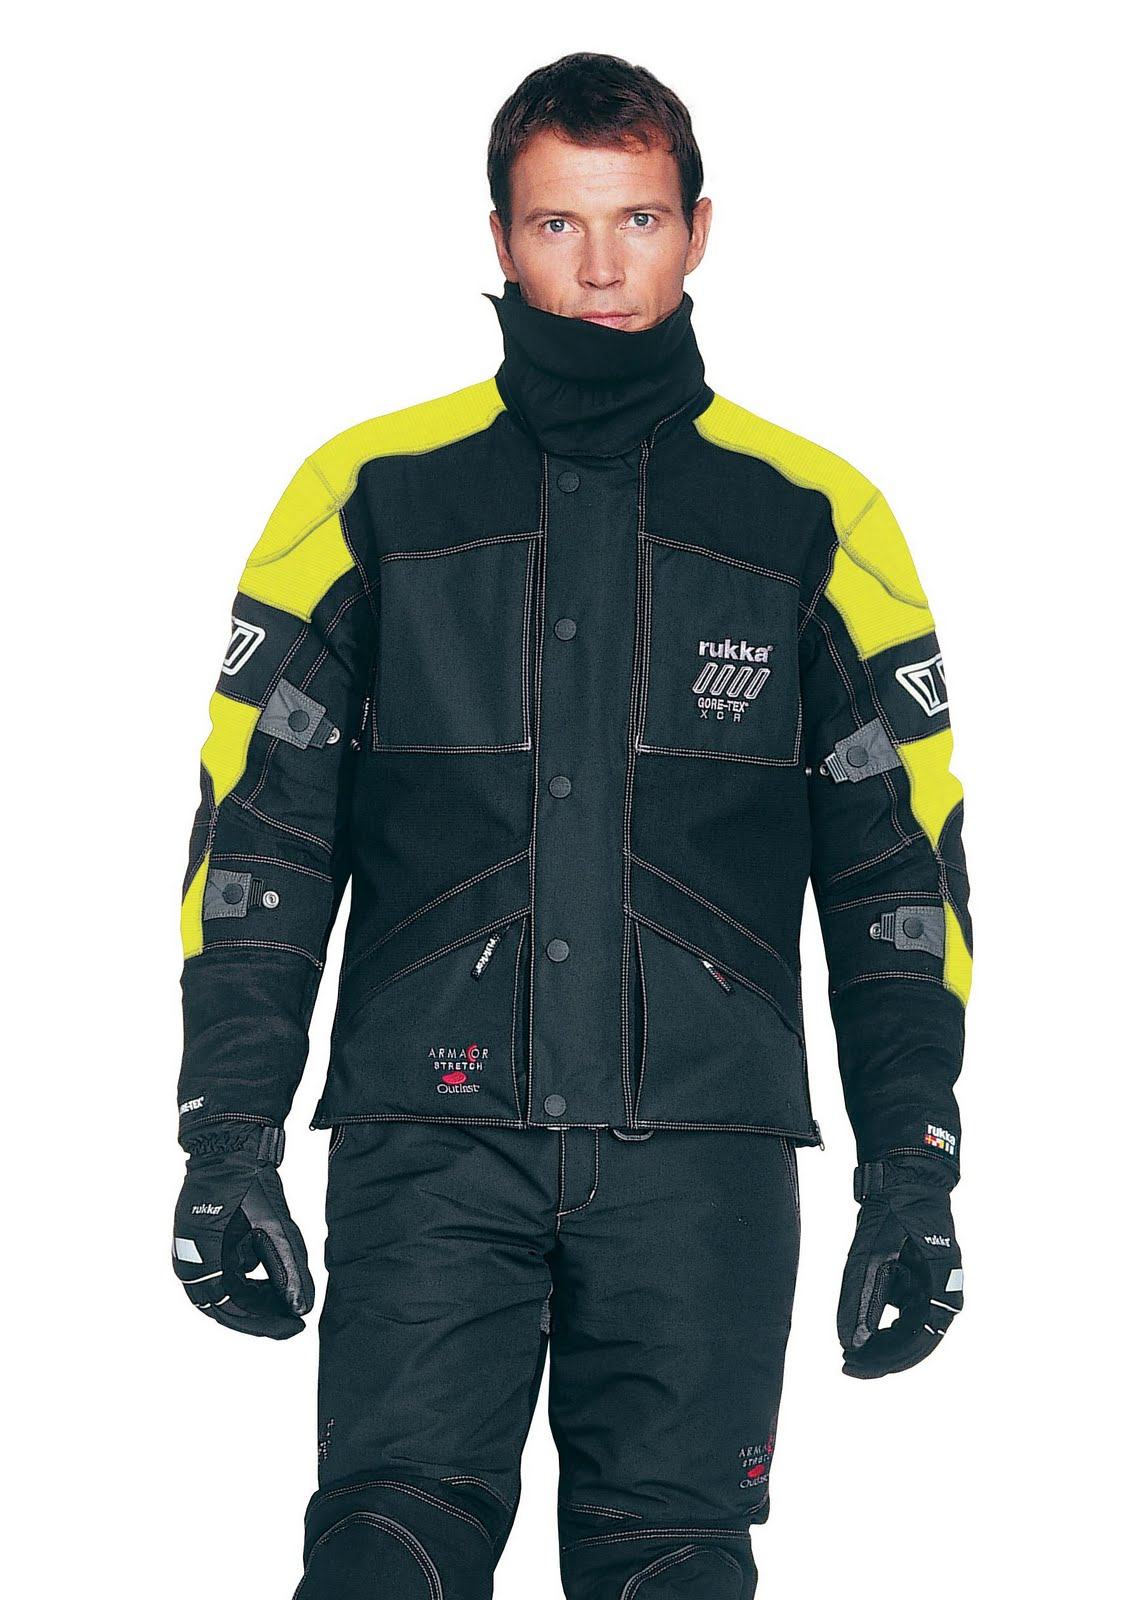 Made To Measure Textile Motorcycle Clothing